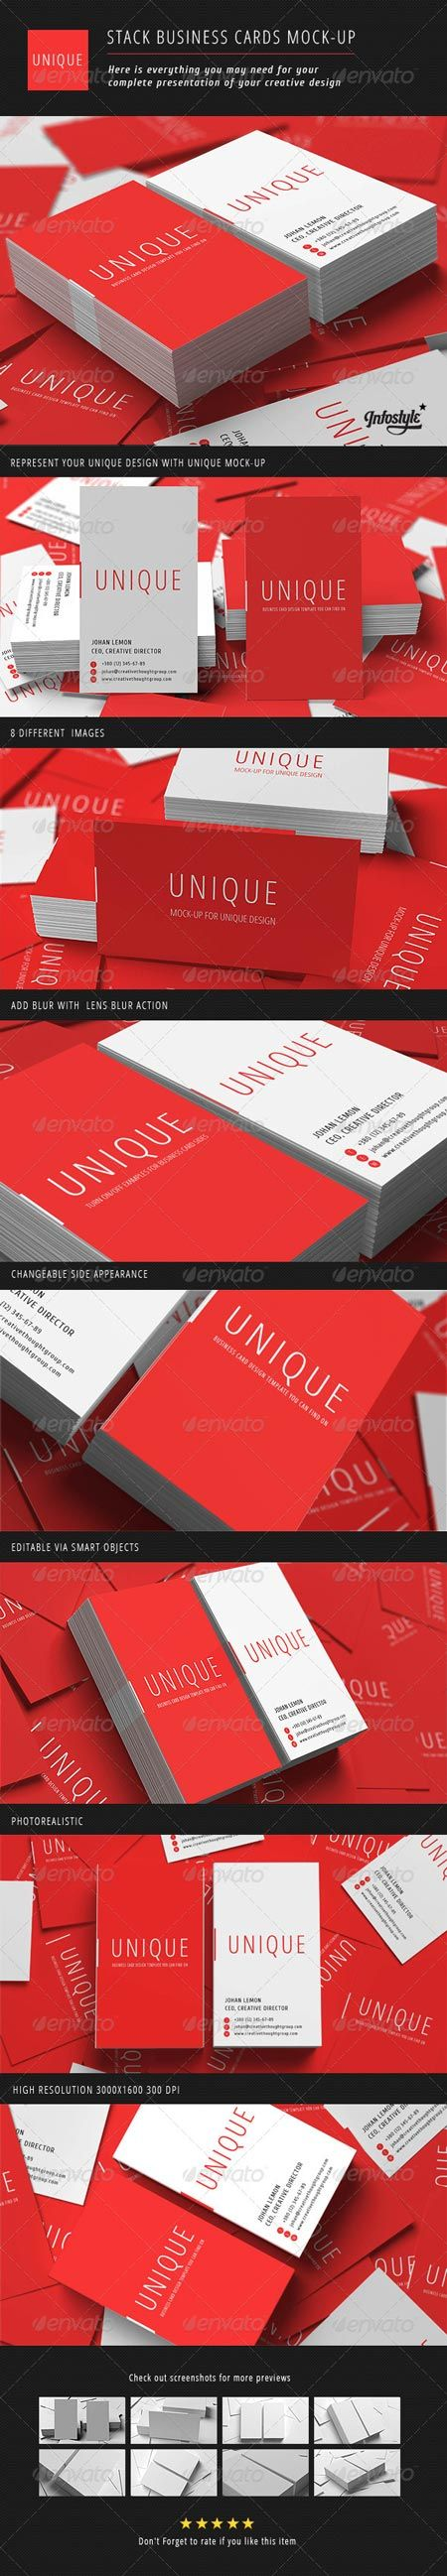 GraphicRiver Stack Business Cards Mock-Up 3063488